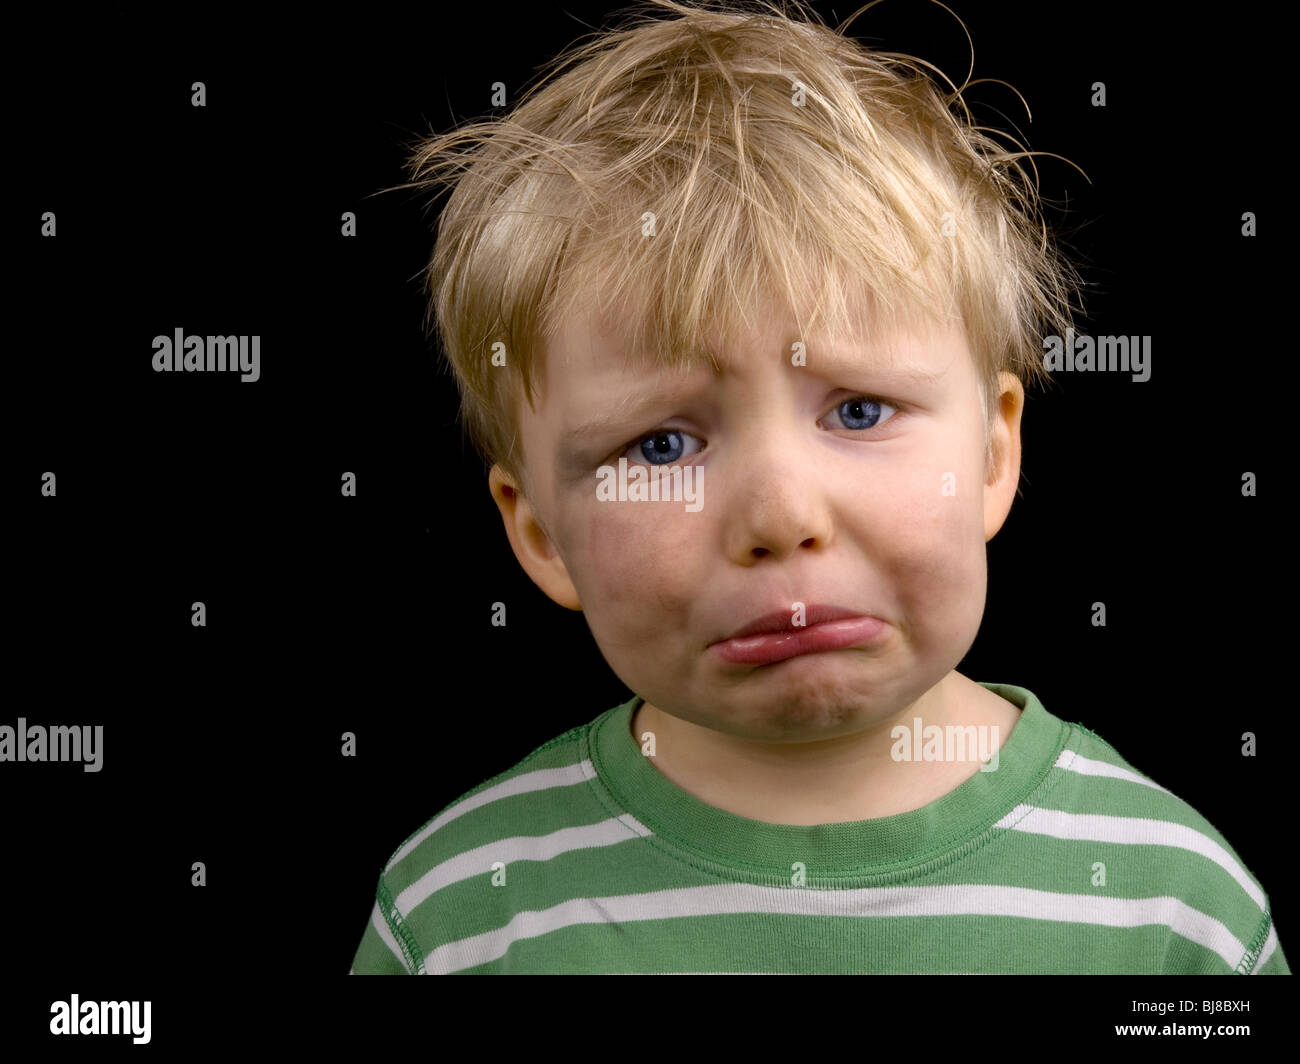 very sad little boy on black background boy have blond